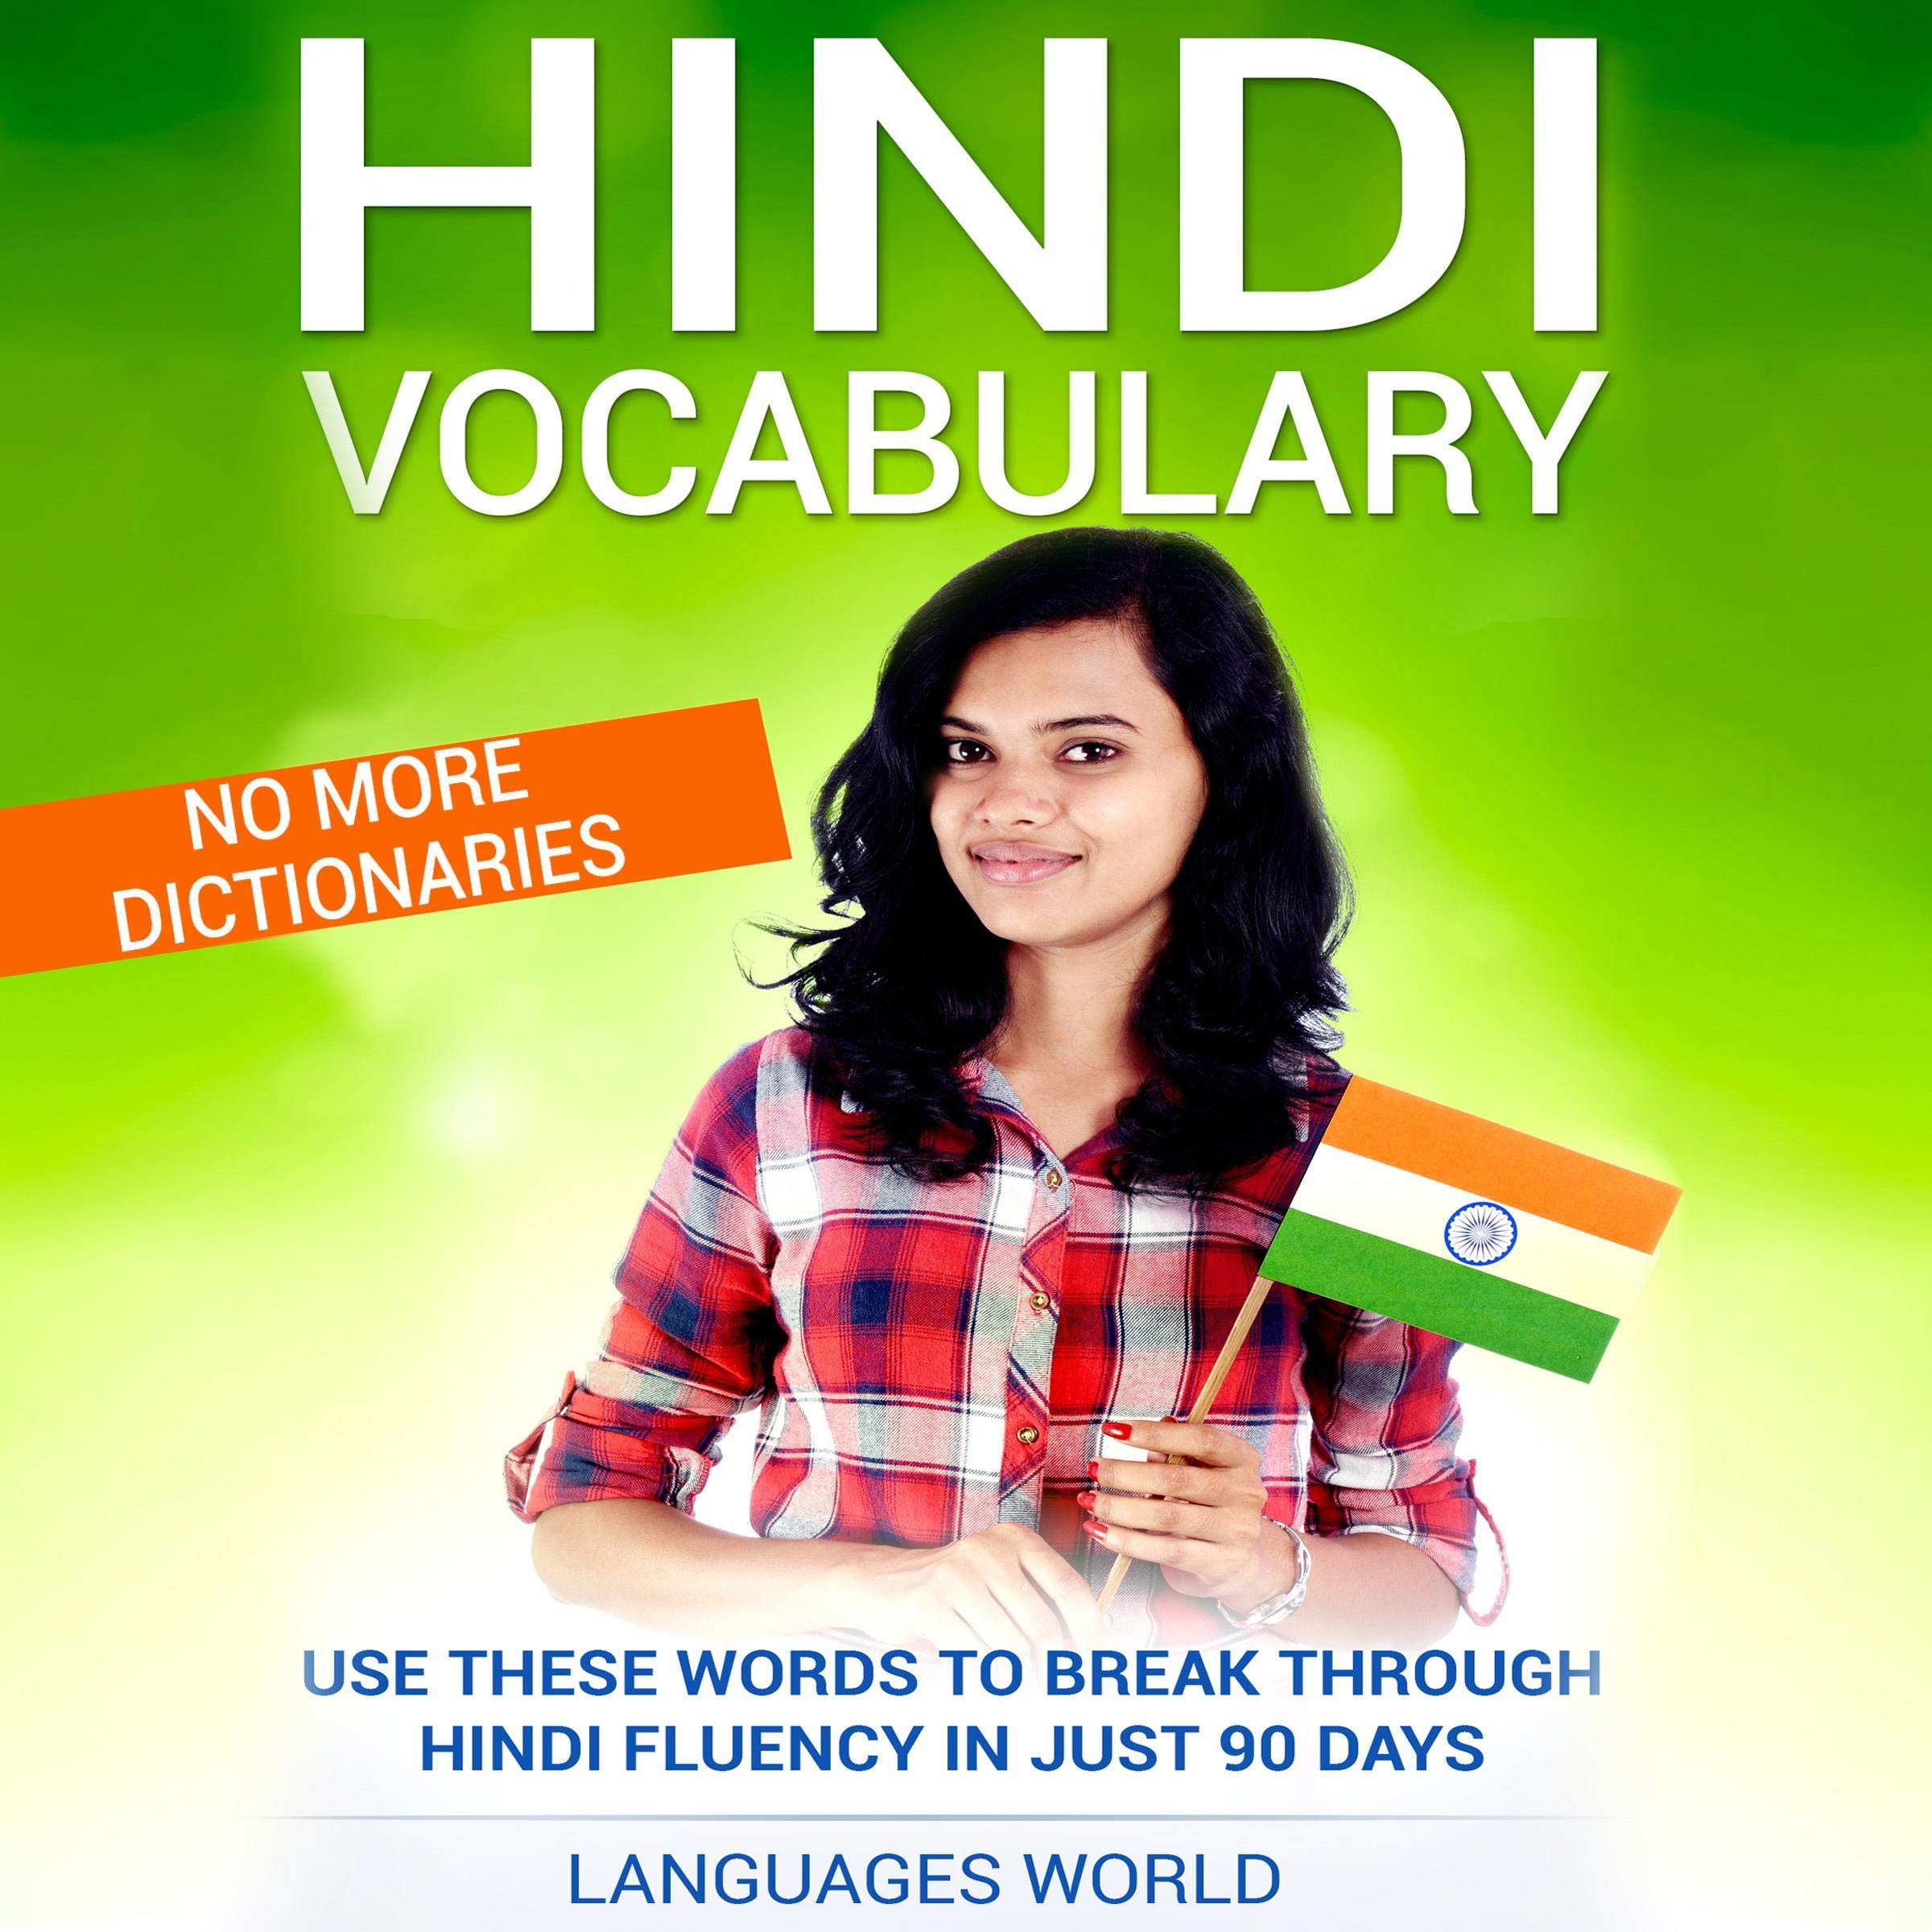 Hindi Vocabulary  Use These Words To Break Through Hindi Fluency In Just 90 Days